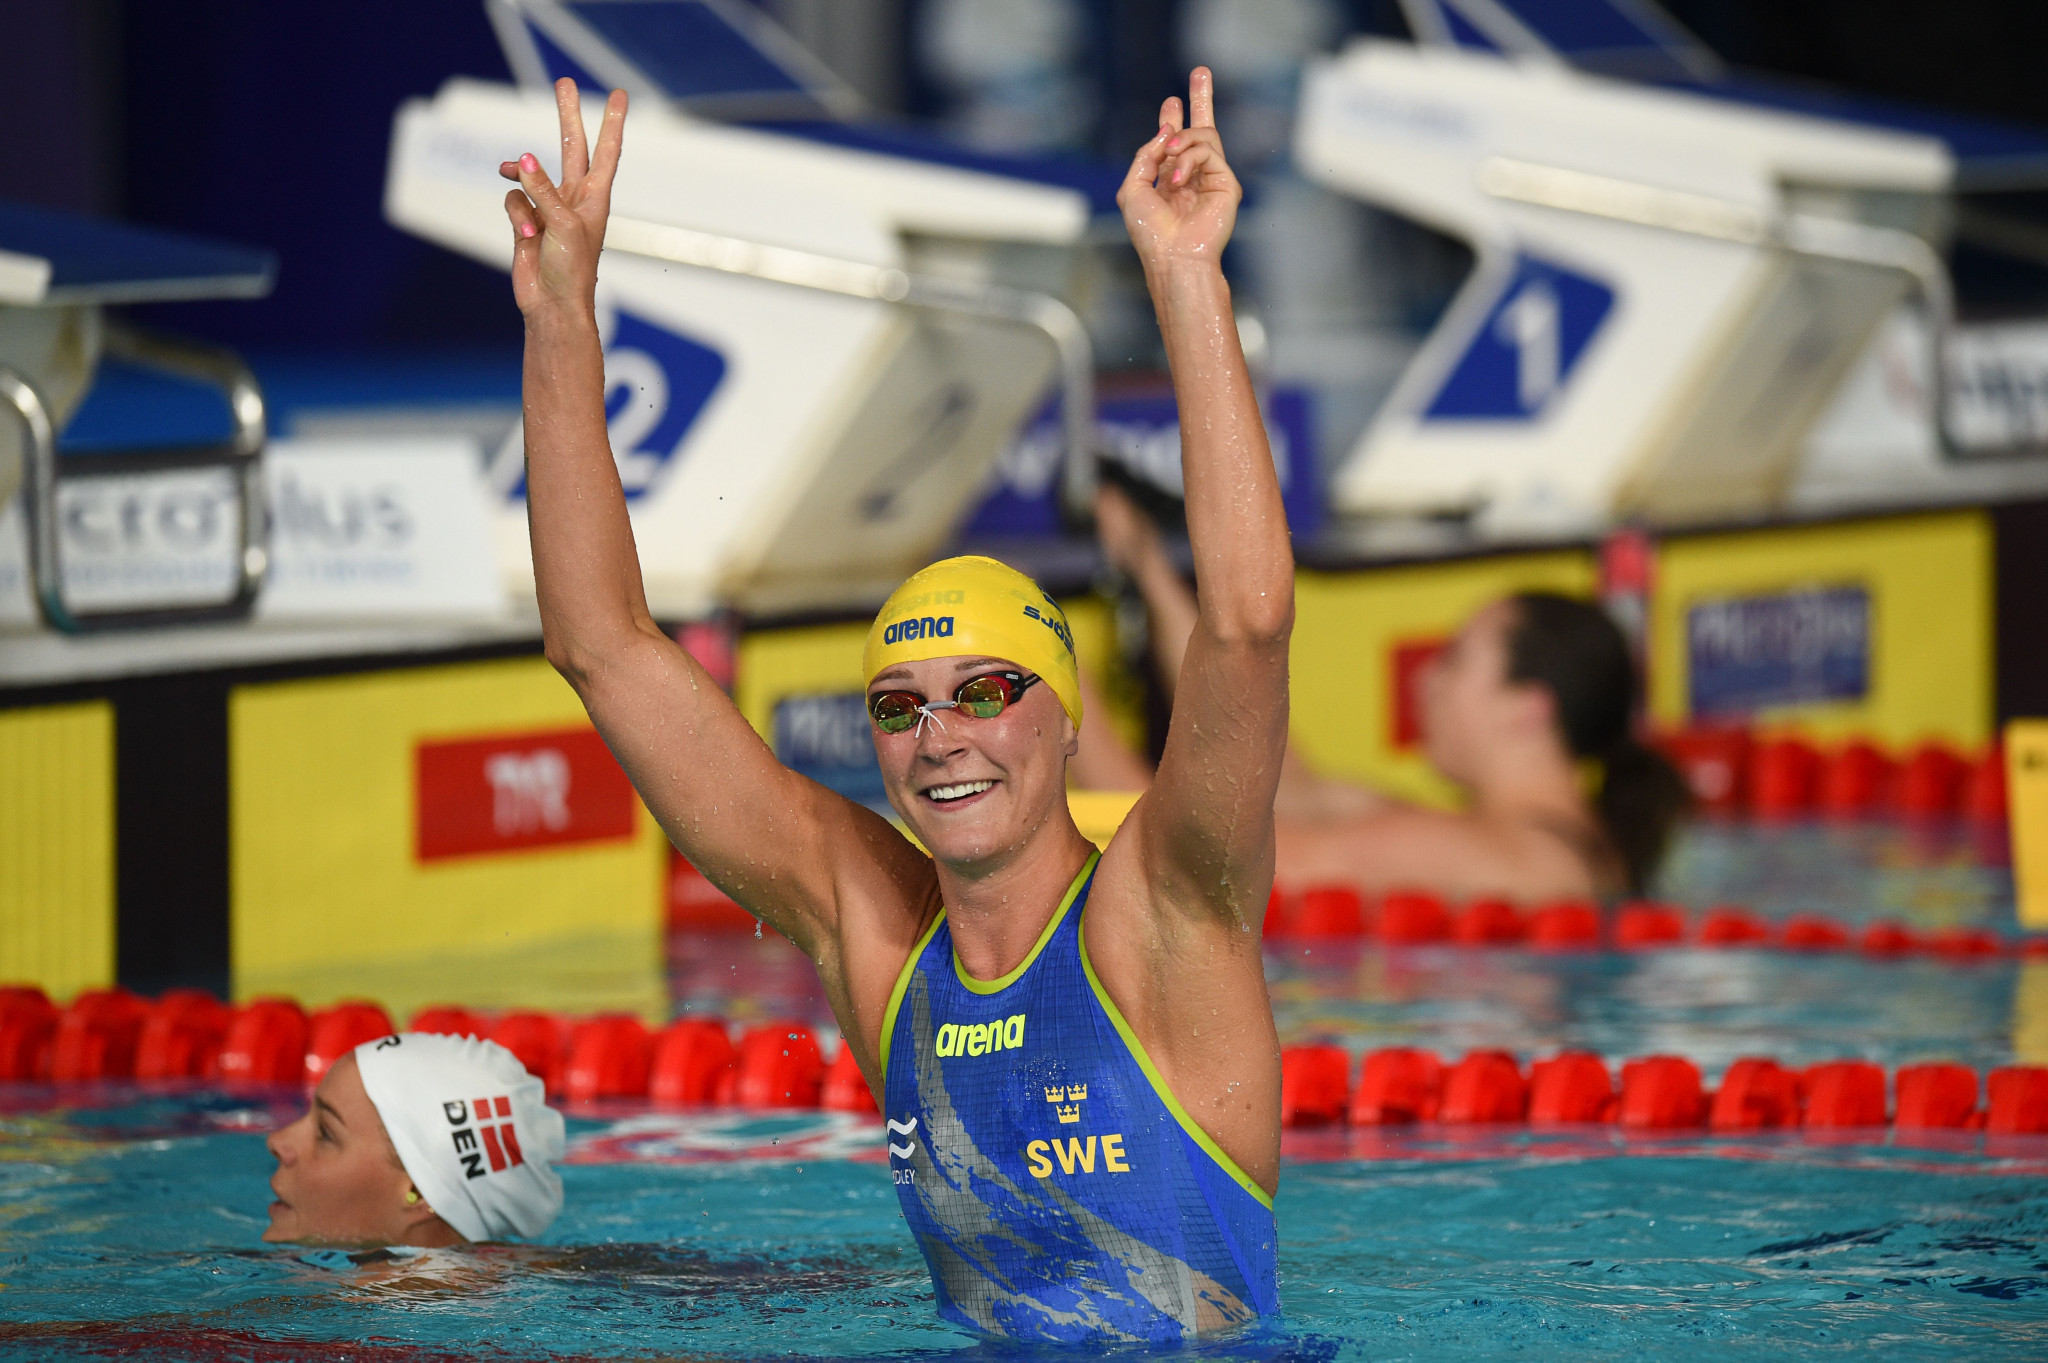 Sweden's Sarah Sjöström claimed two gold medals today ©Getty Images